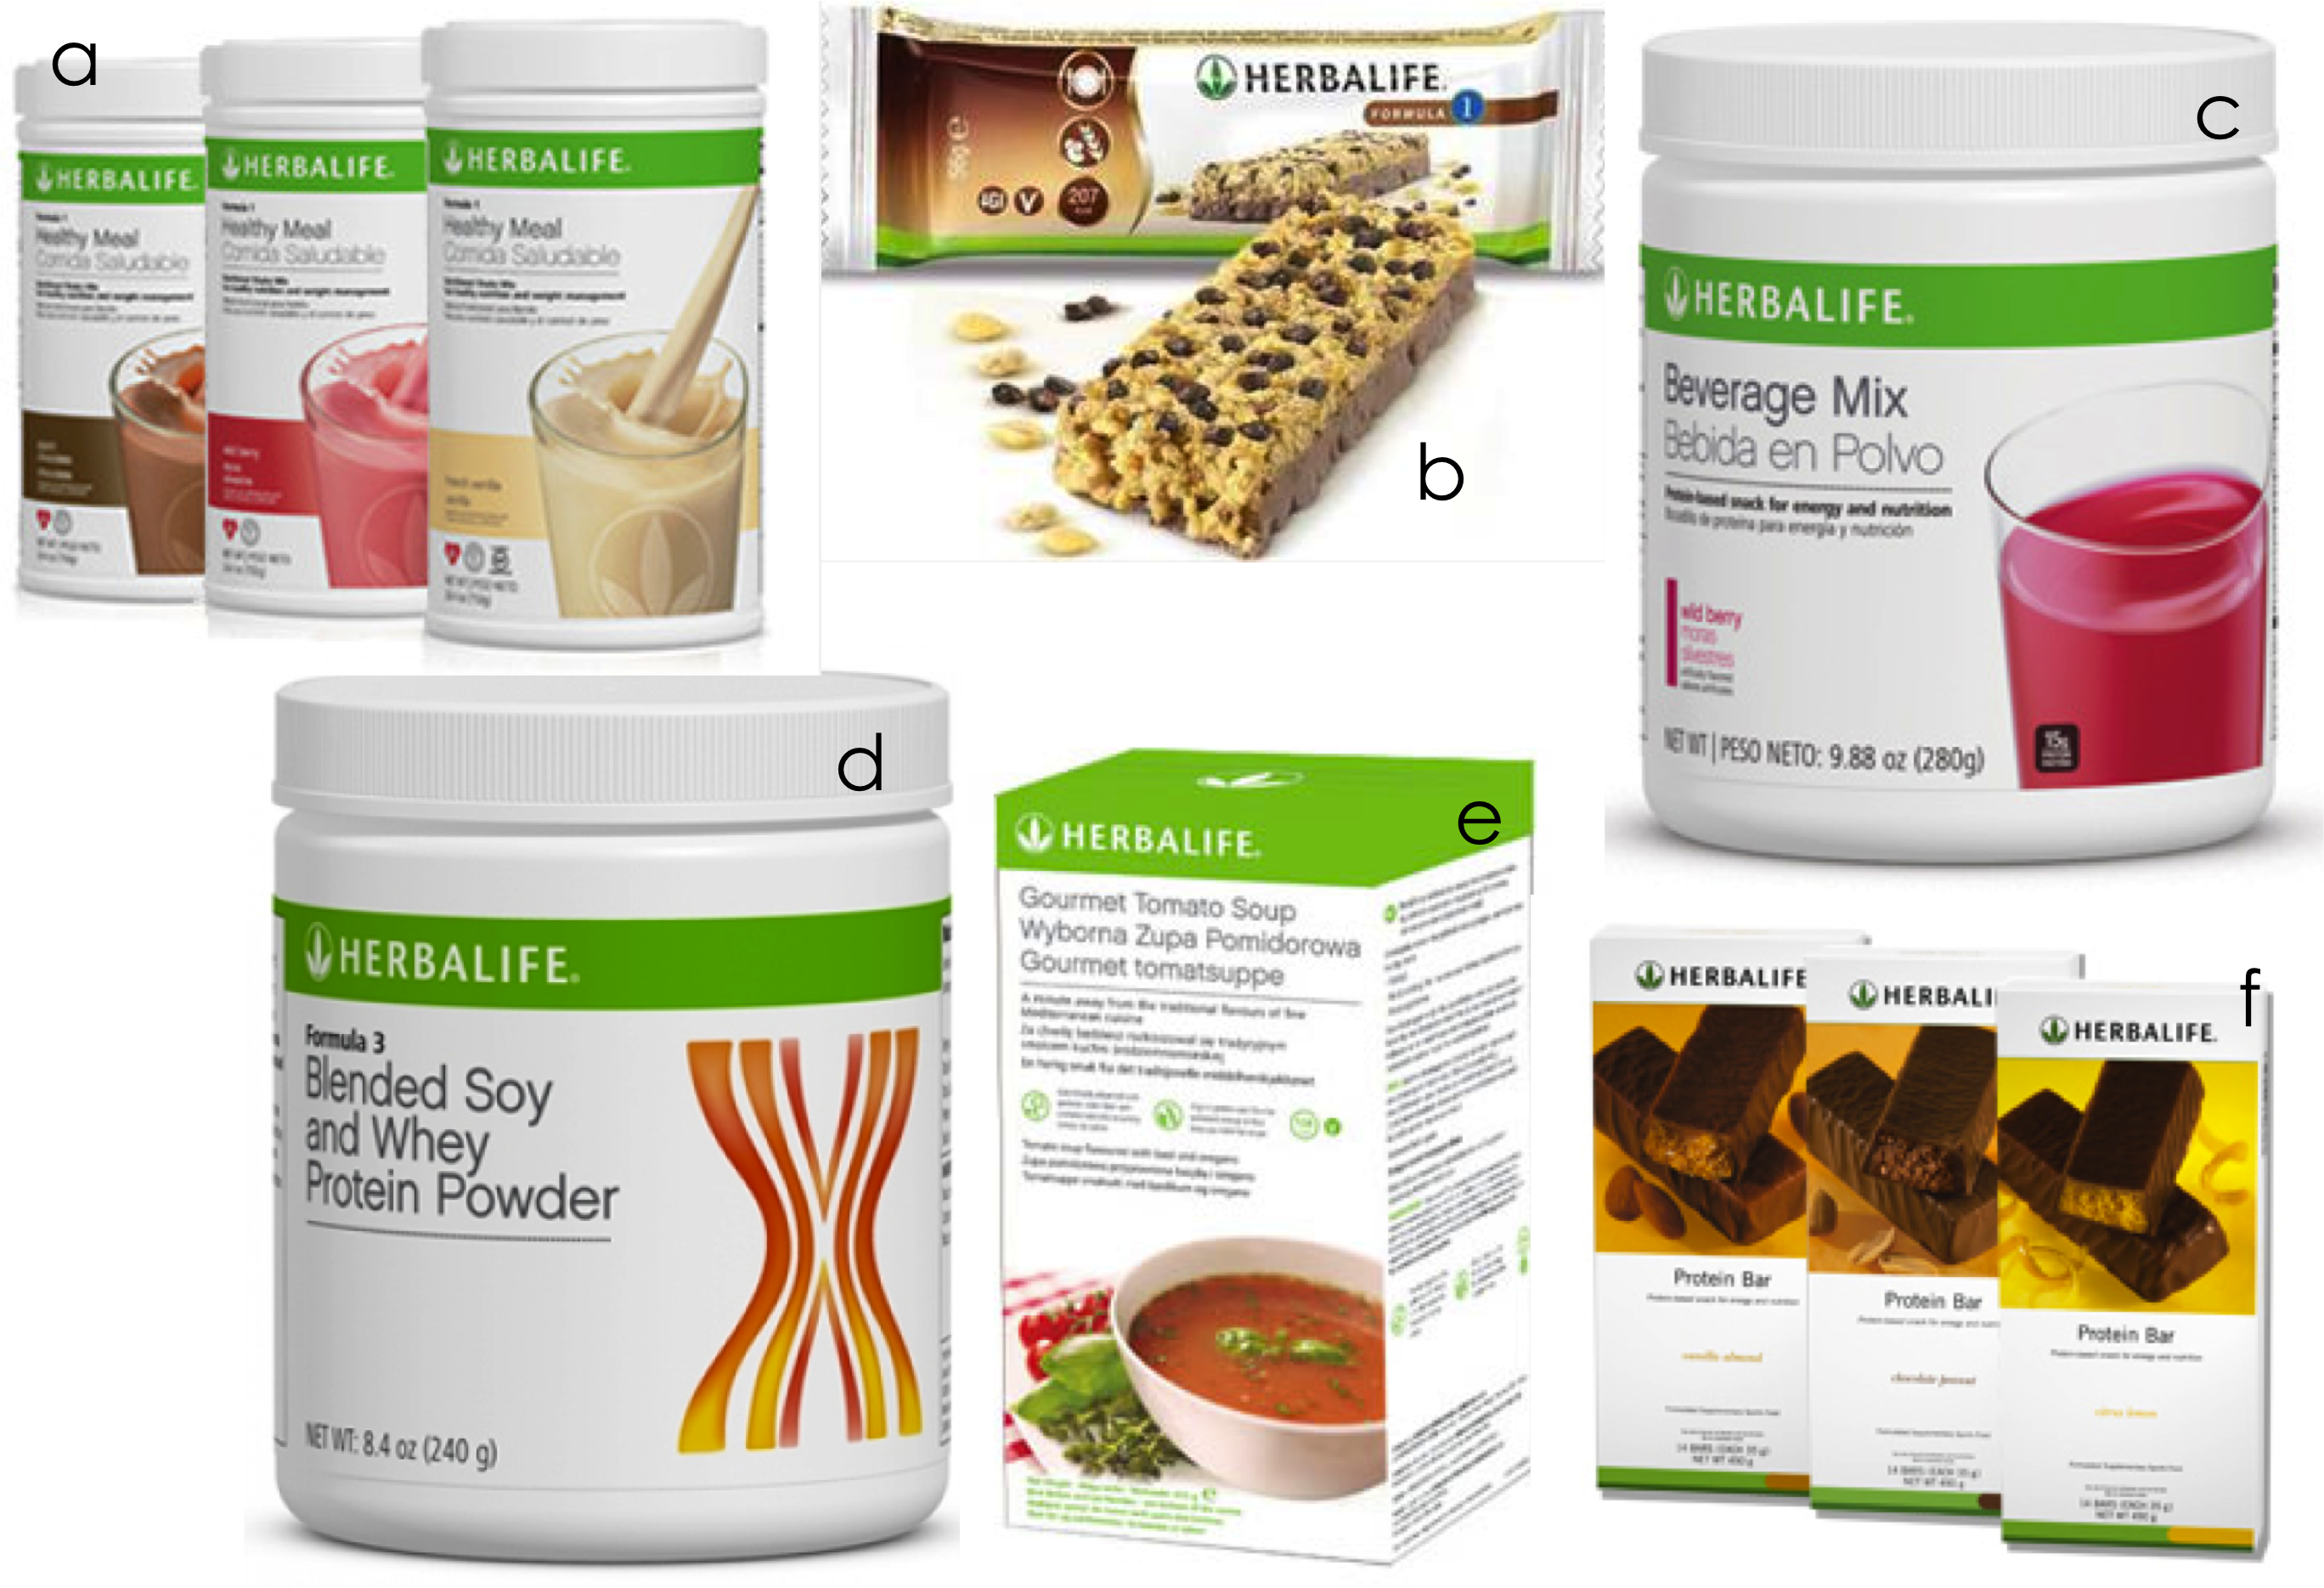 https://fitnessffashion.files.wordpress.com/2013/04/herbalifeprotein.png